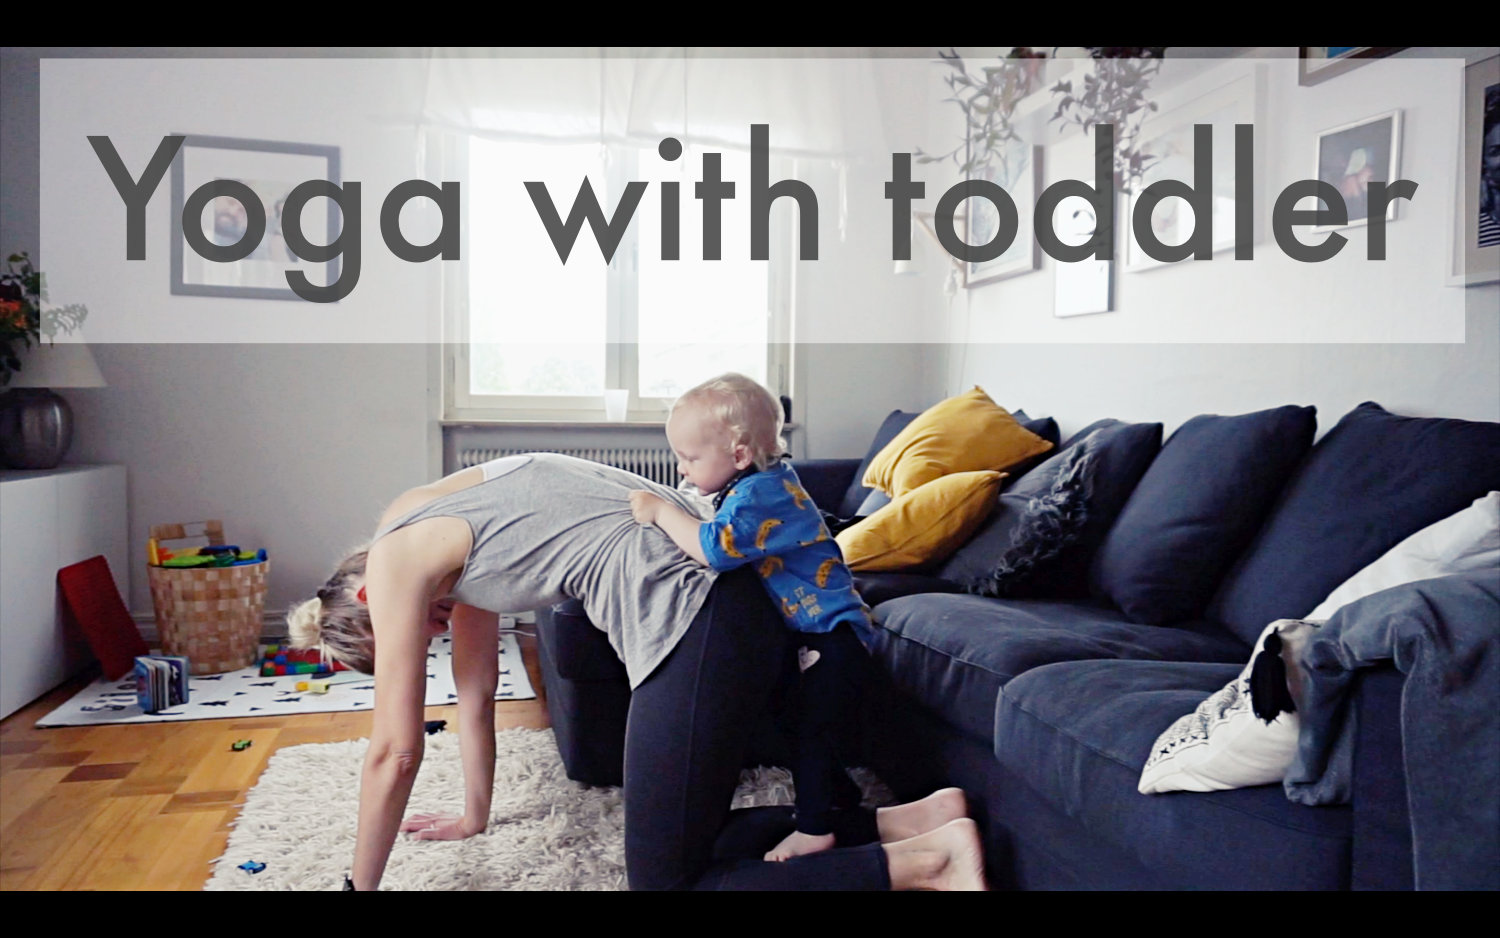 Yoga with toddler